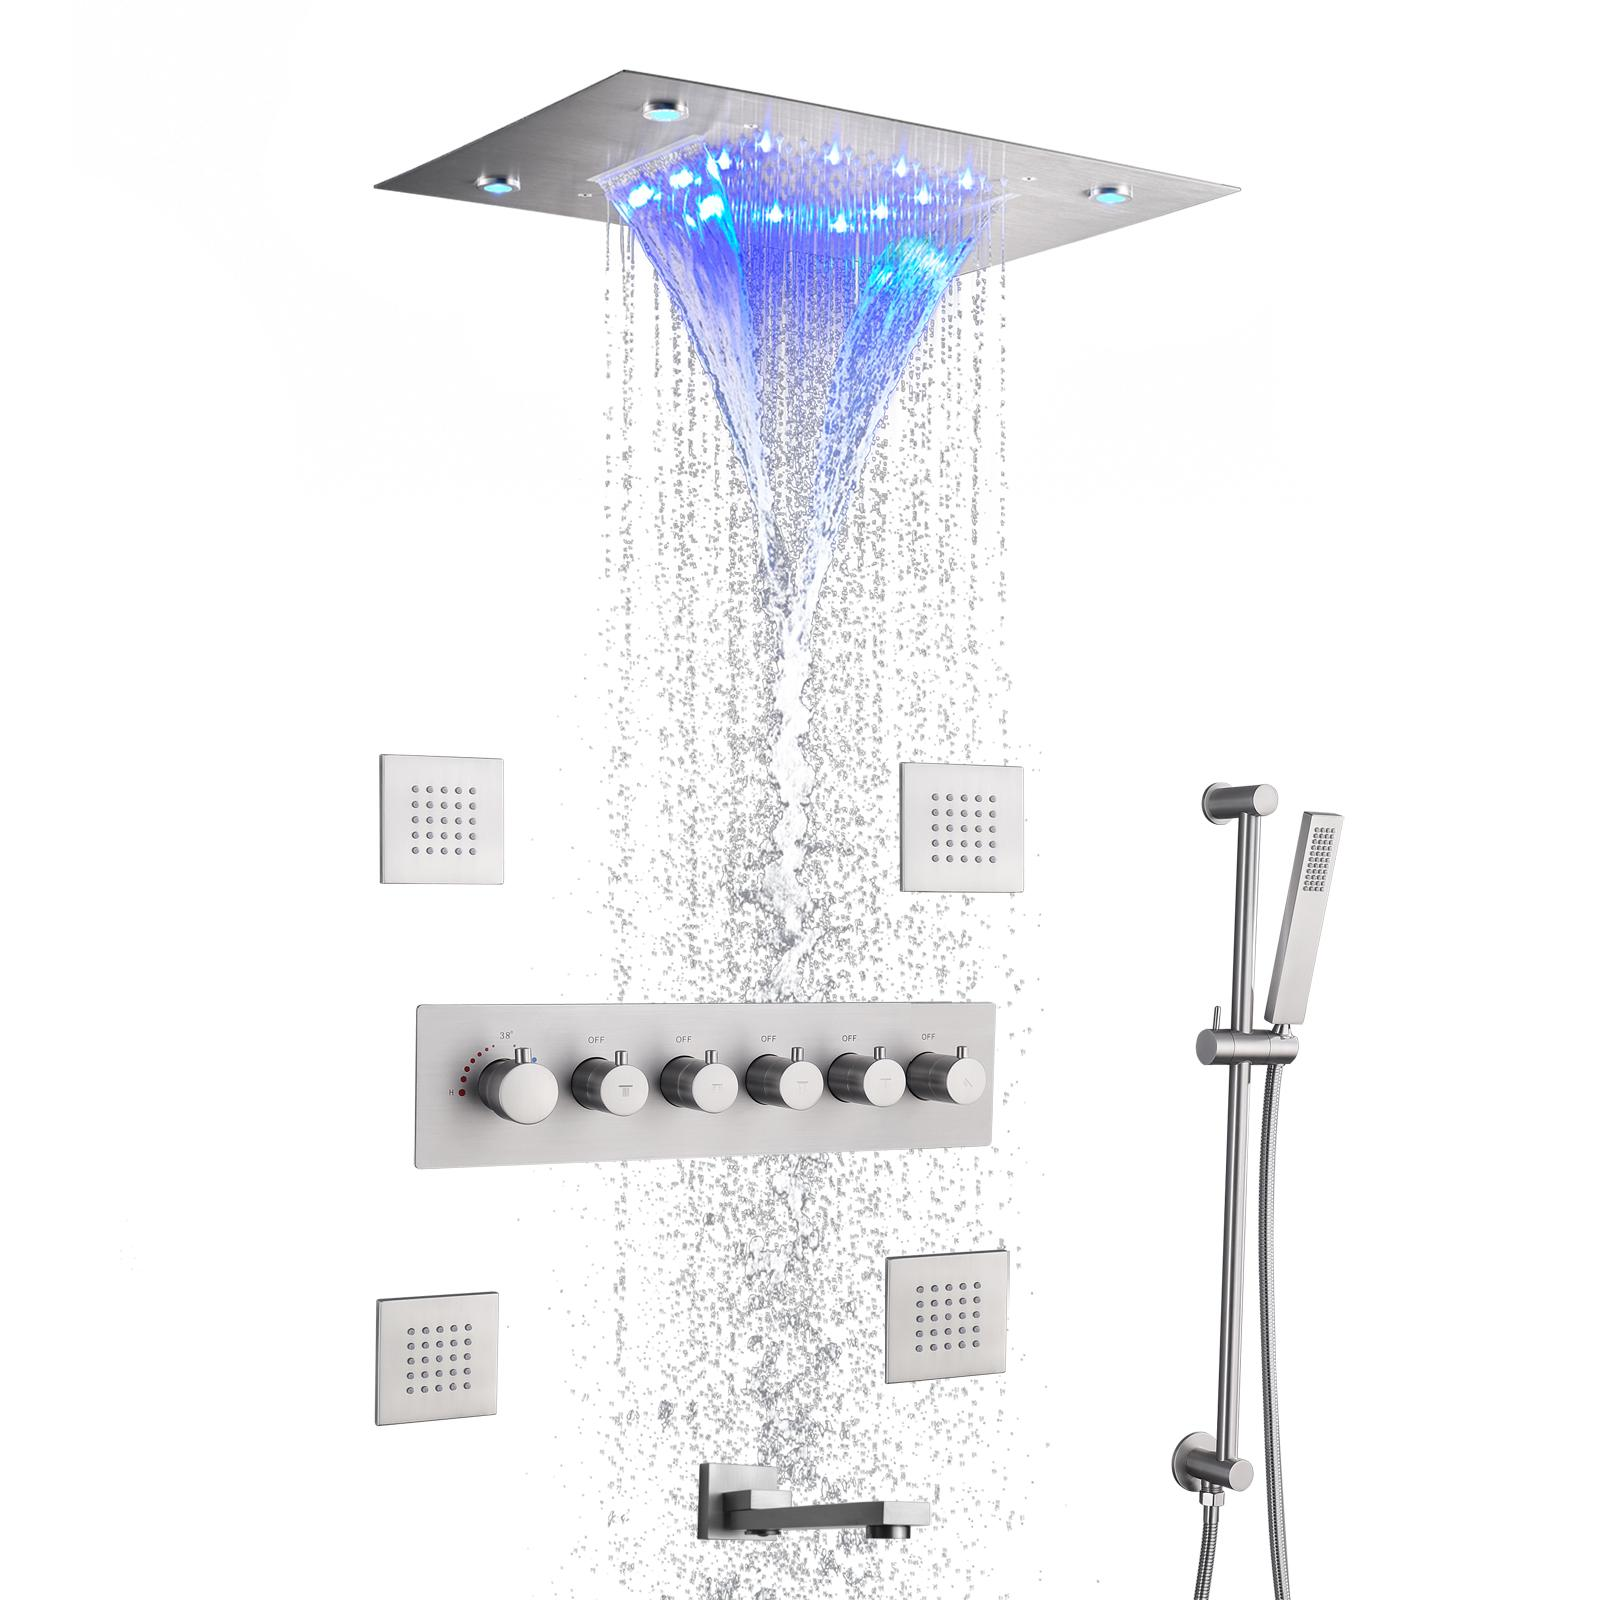 Thermostatic Brushed Rain Shower Faucet System Bathroom Mixer Set Ceil Mounted 14 X 20 Inch LED Waterfall Rainfall Shower Head